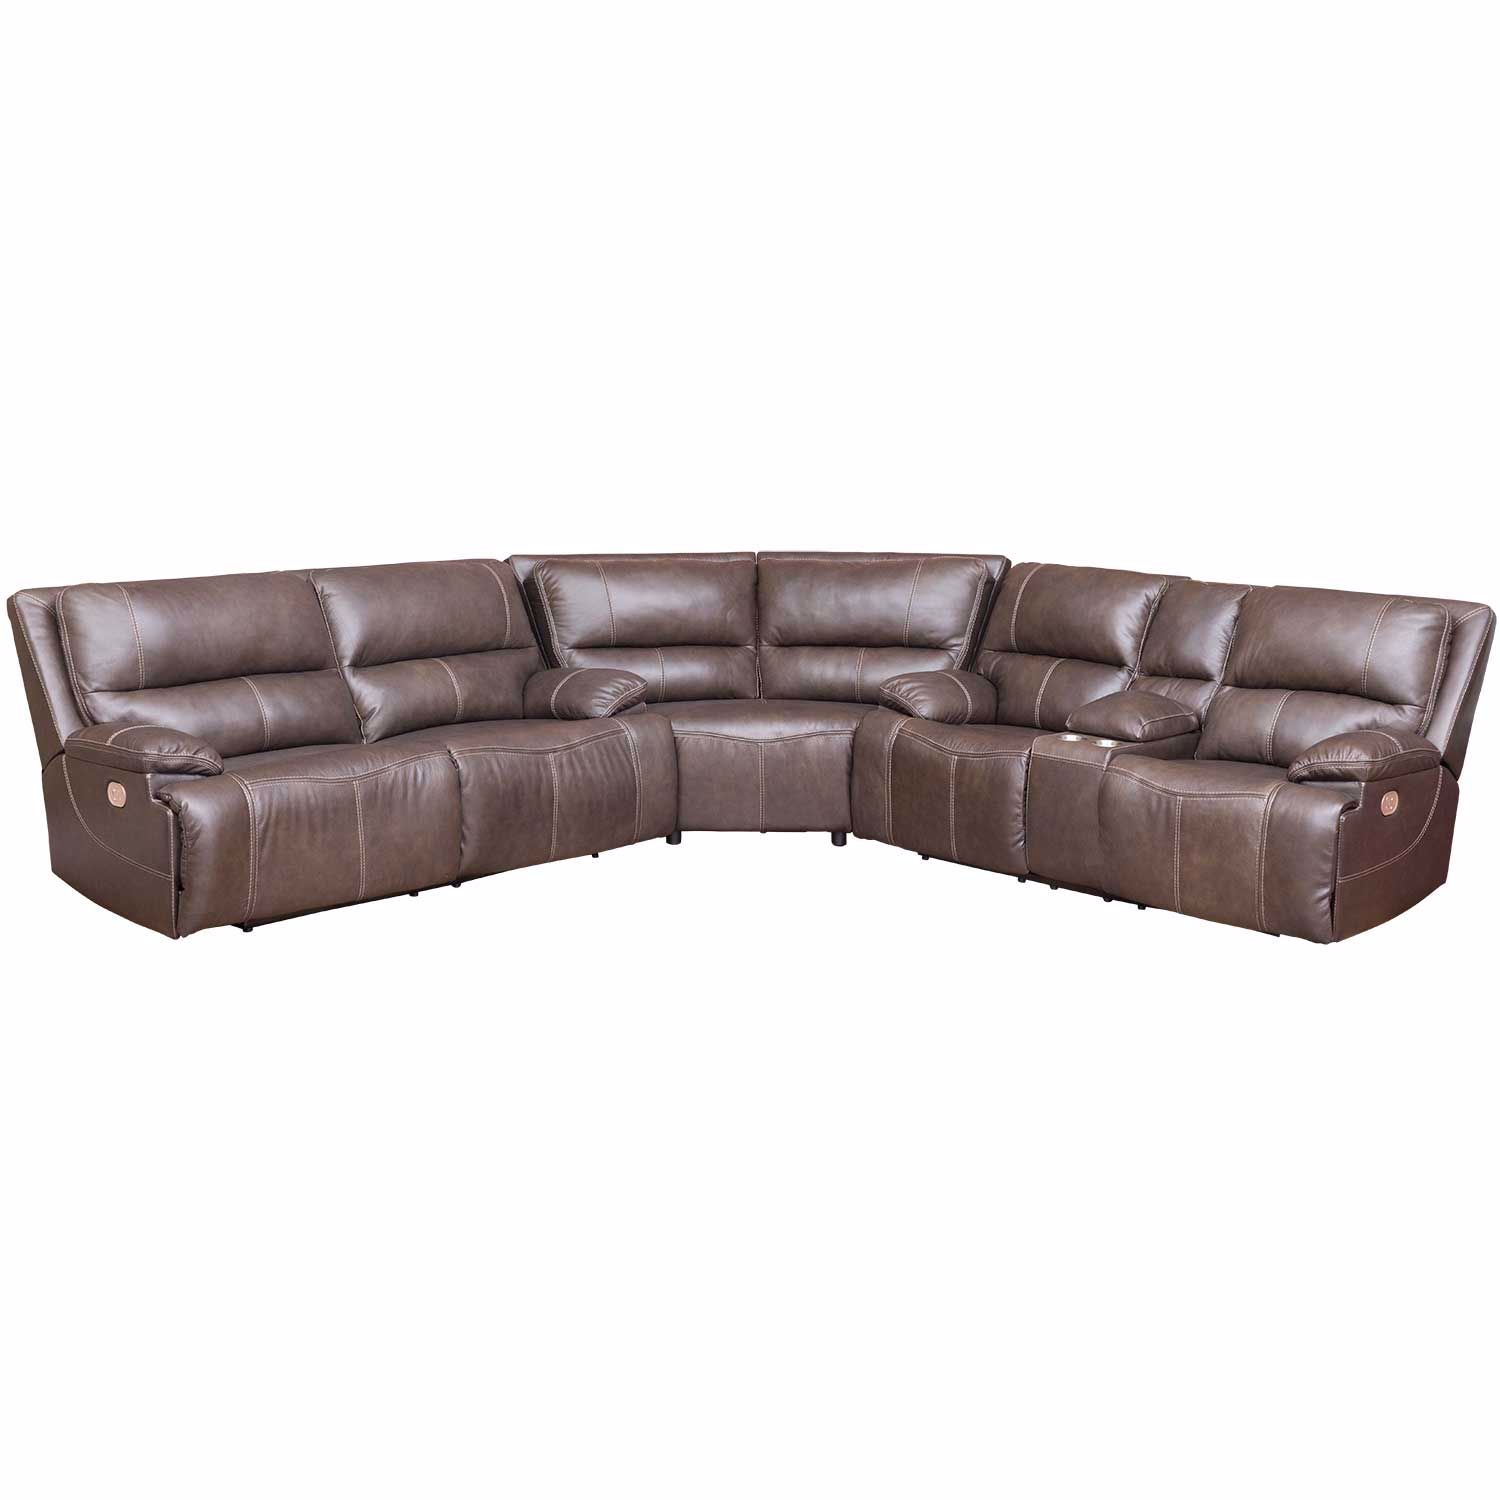 Ricmen Walnut 3 Piece Italian Leather Power Reclining Sectional with  Adjustable Headrest